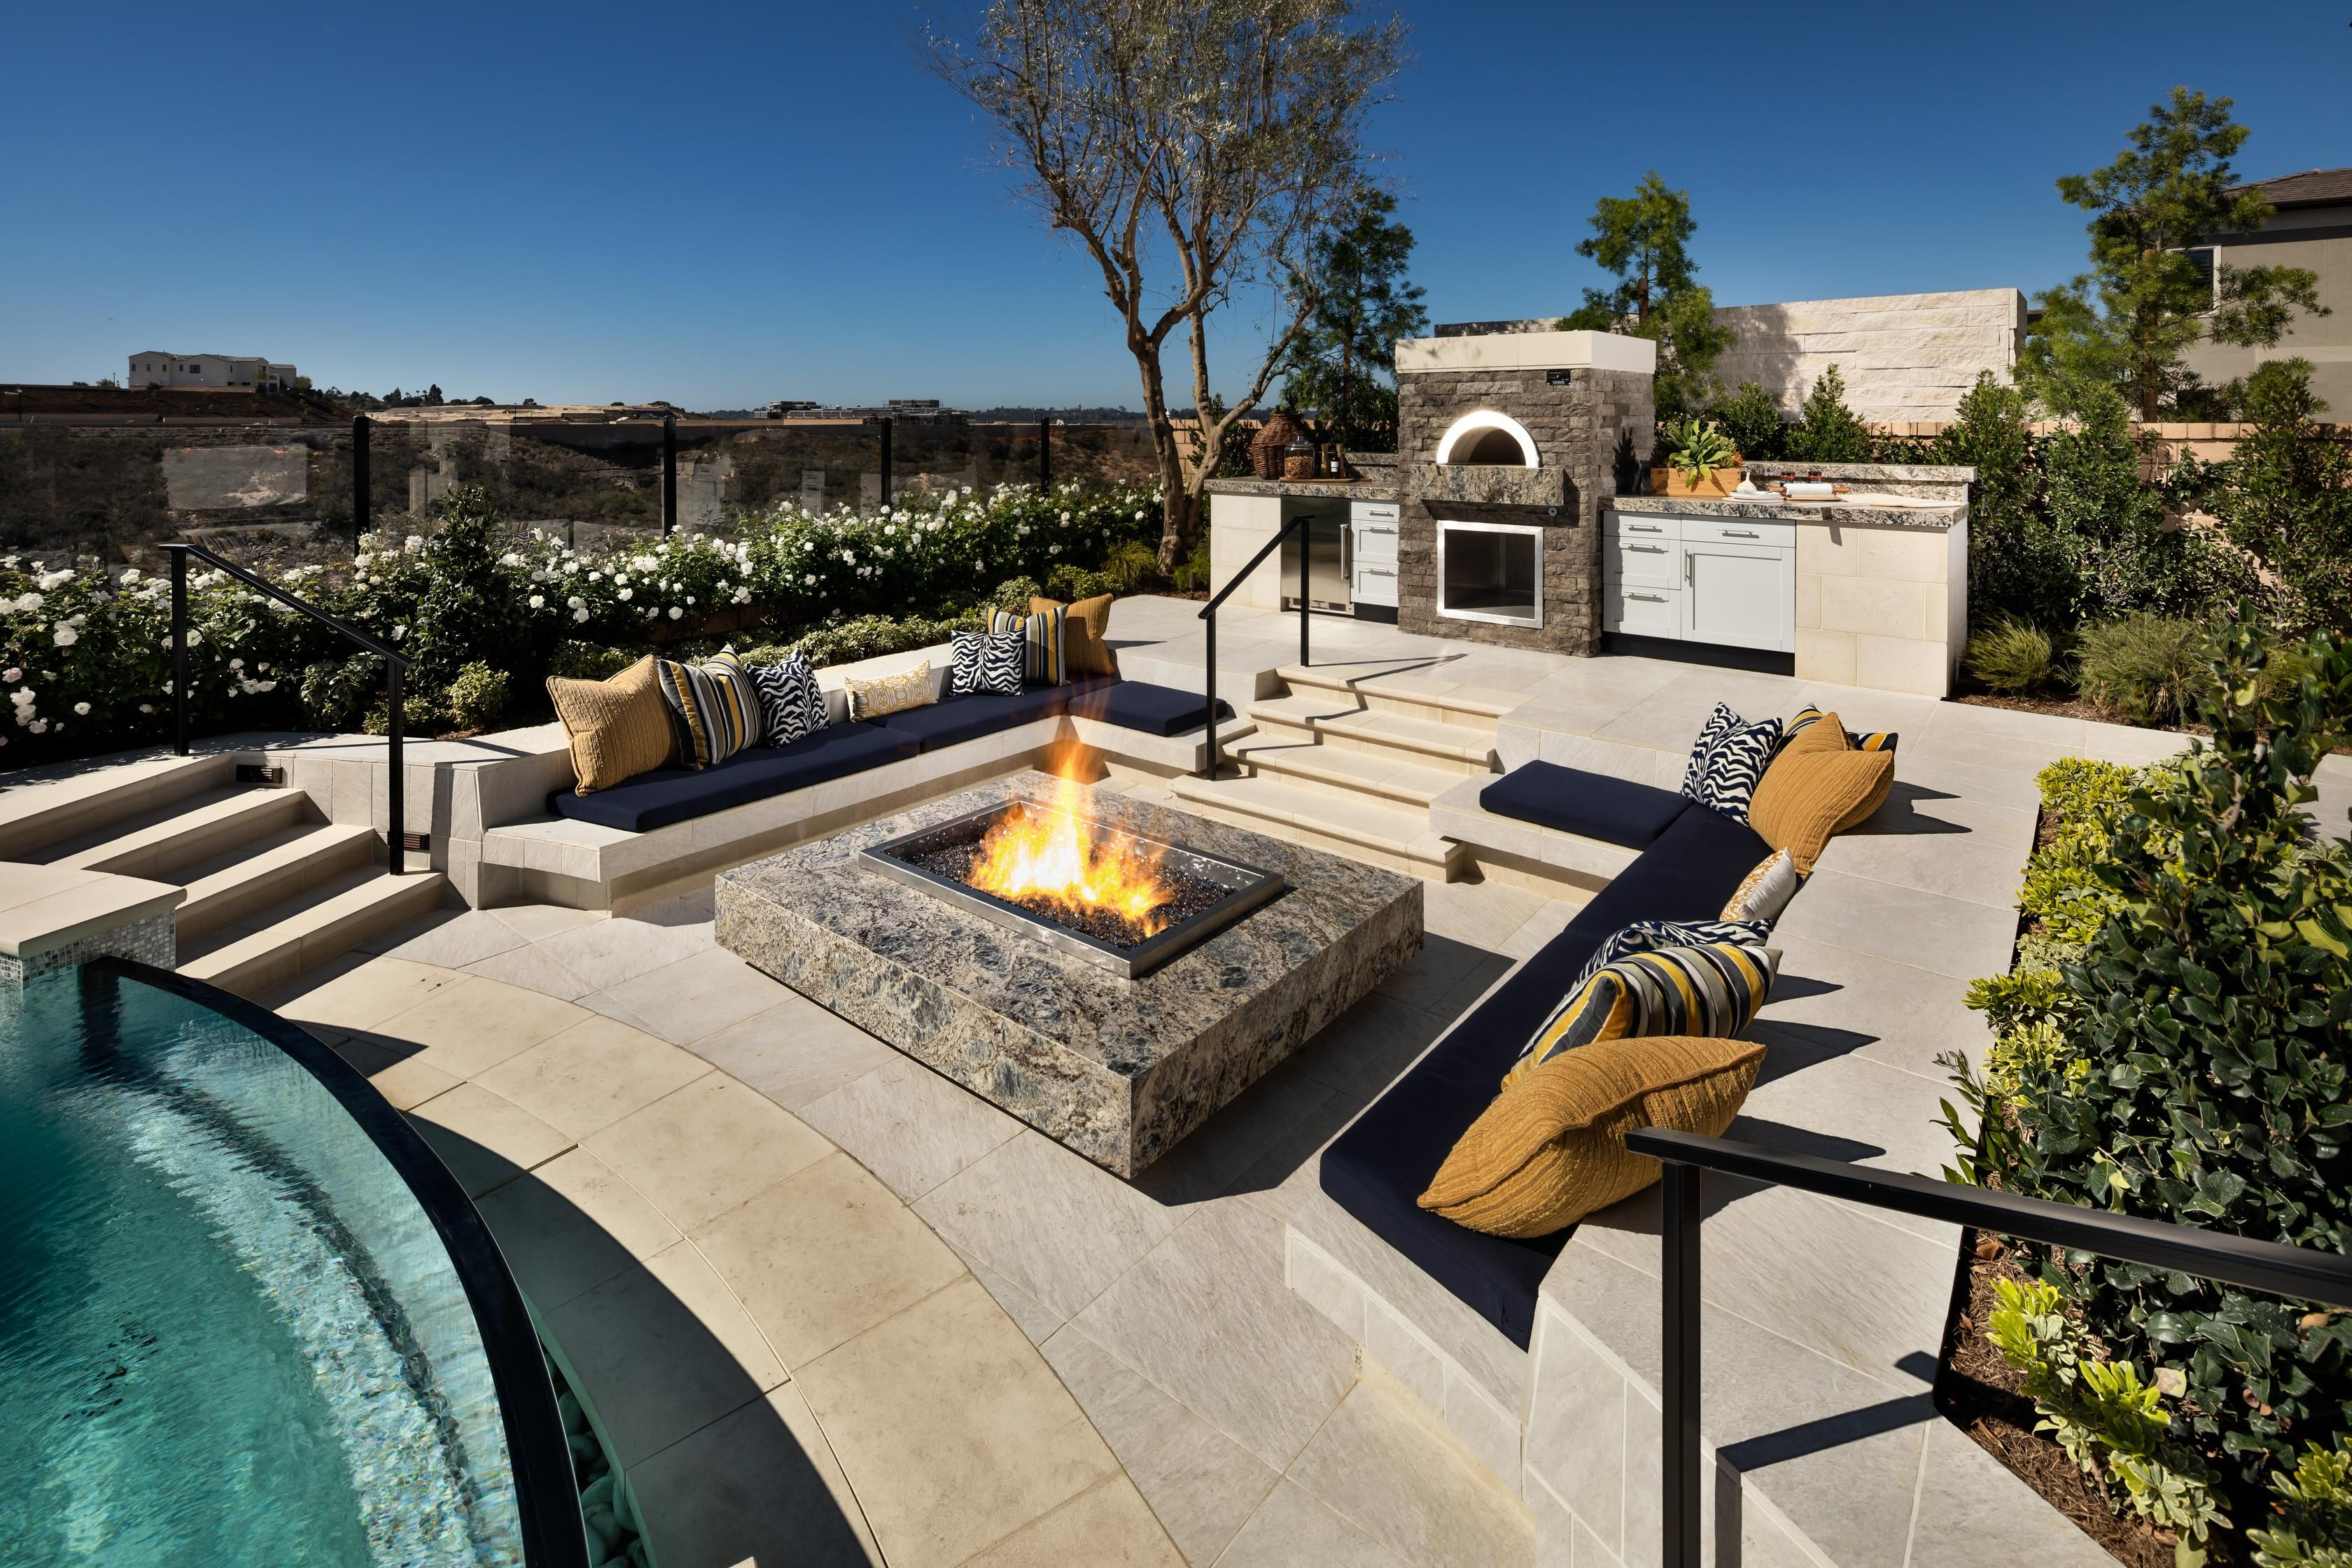 Take The Fun Times Outside With This Magnificent Fire Pit Area